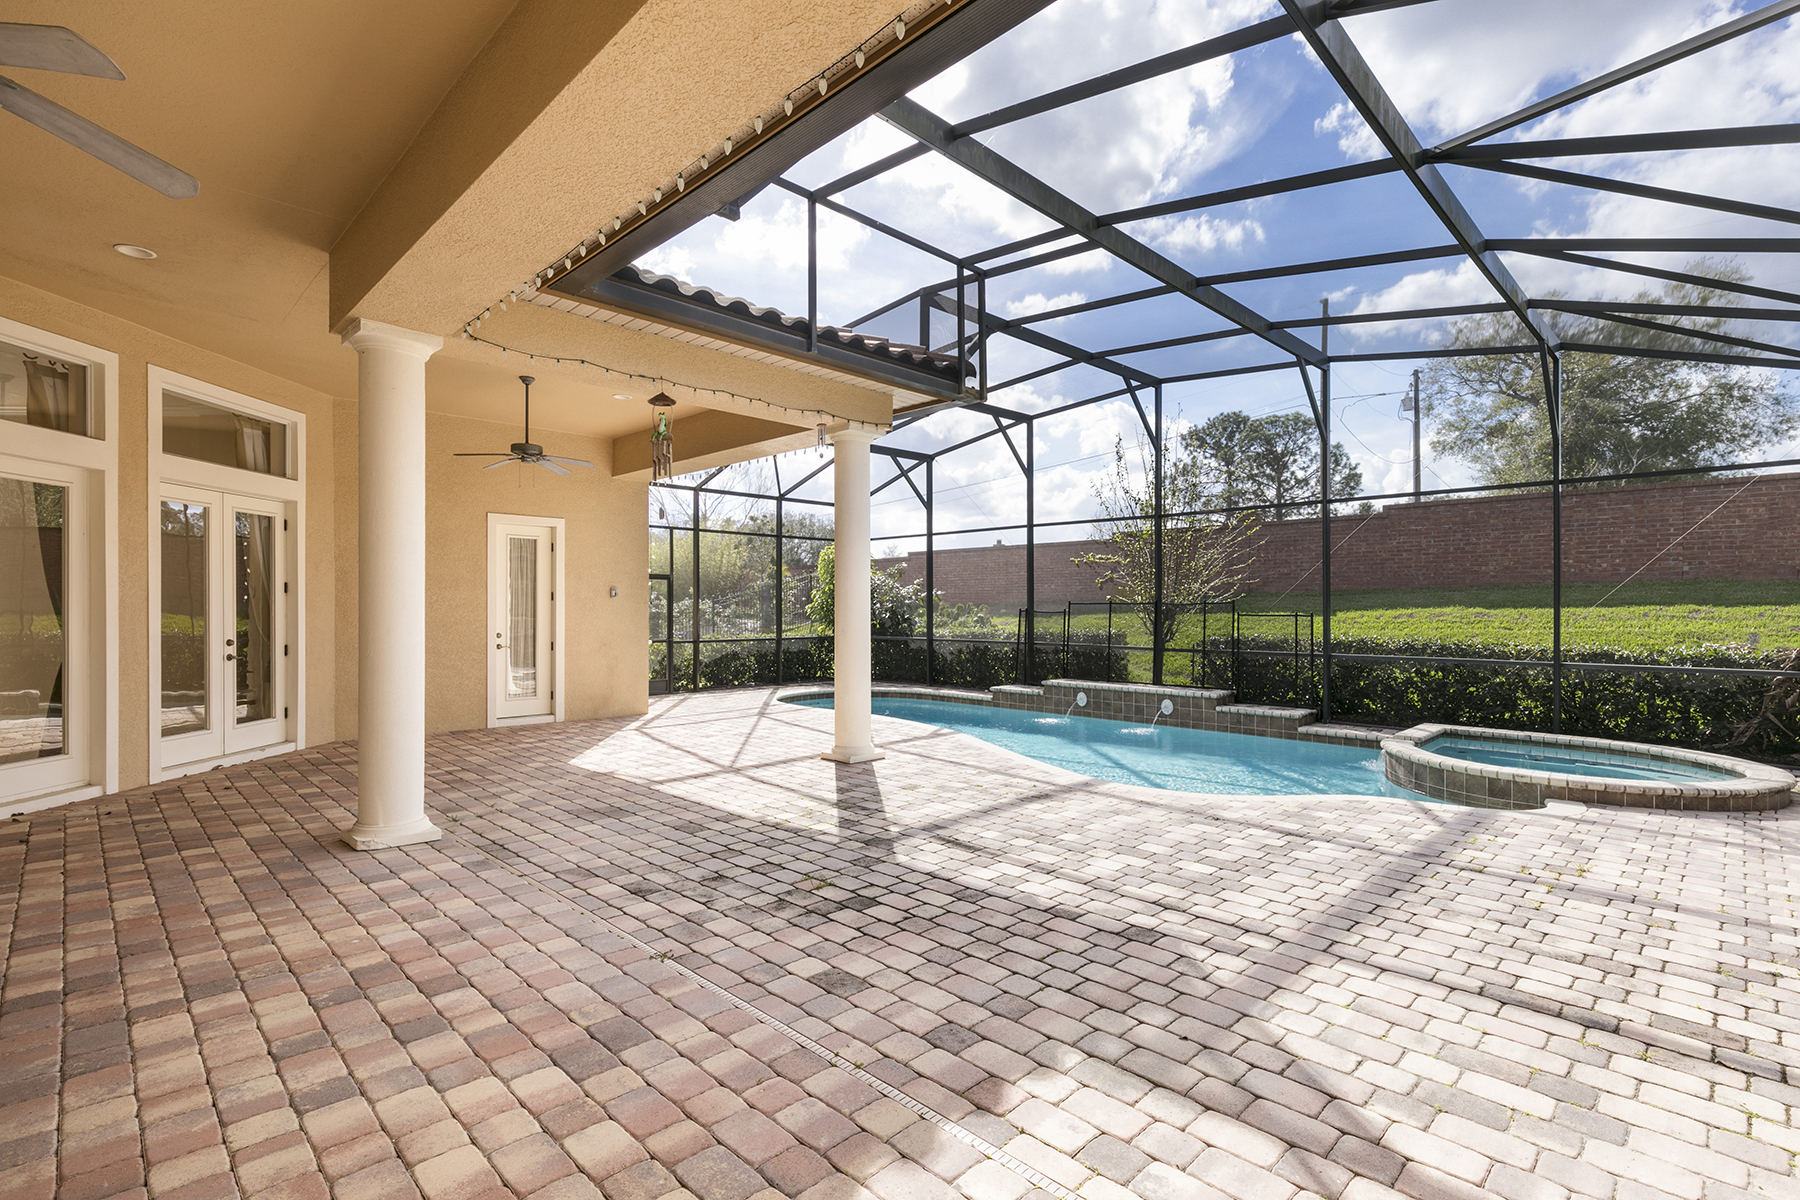 Additional photo for property listing at 9143 Panzani Pl , Windermere, FL 34786 9143  Panzani Pl,  Windermere, Florida 34786 United States